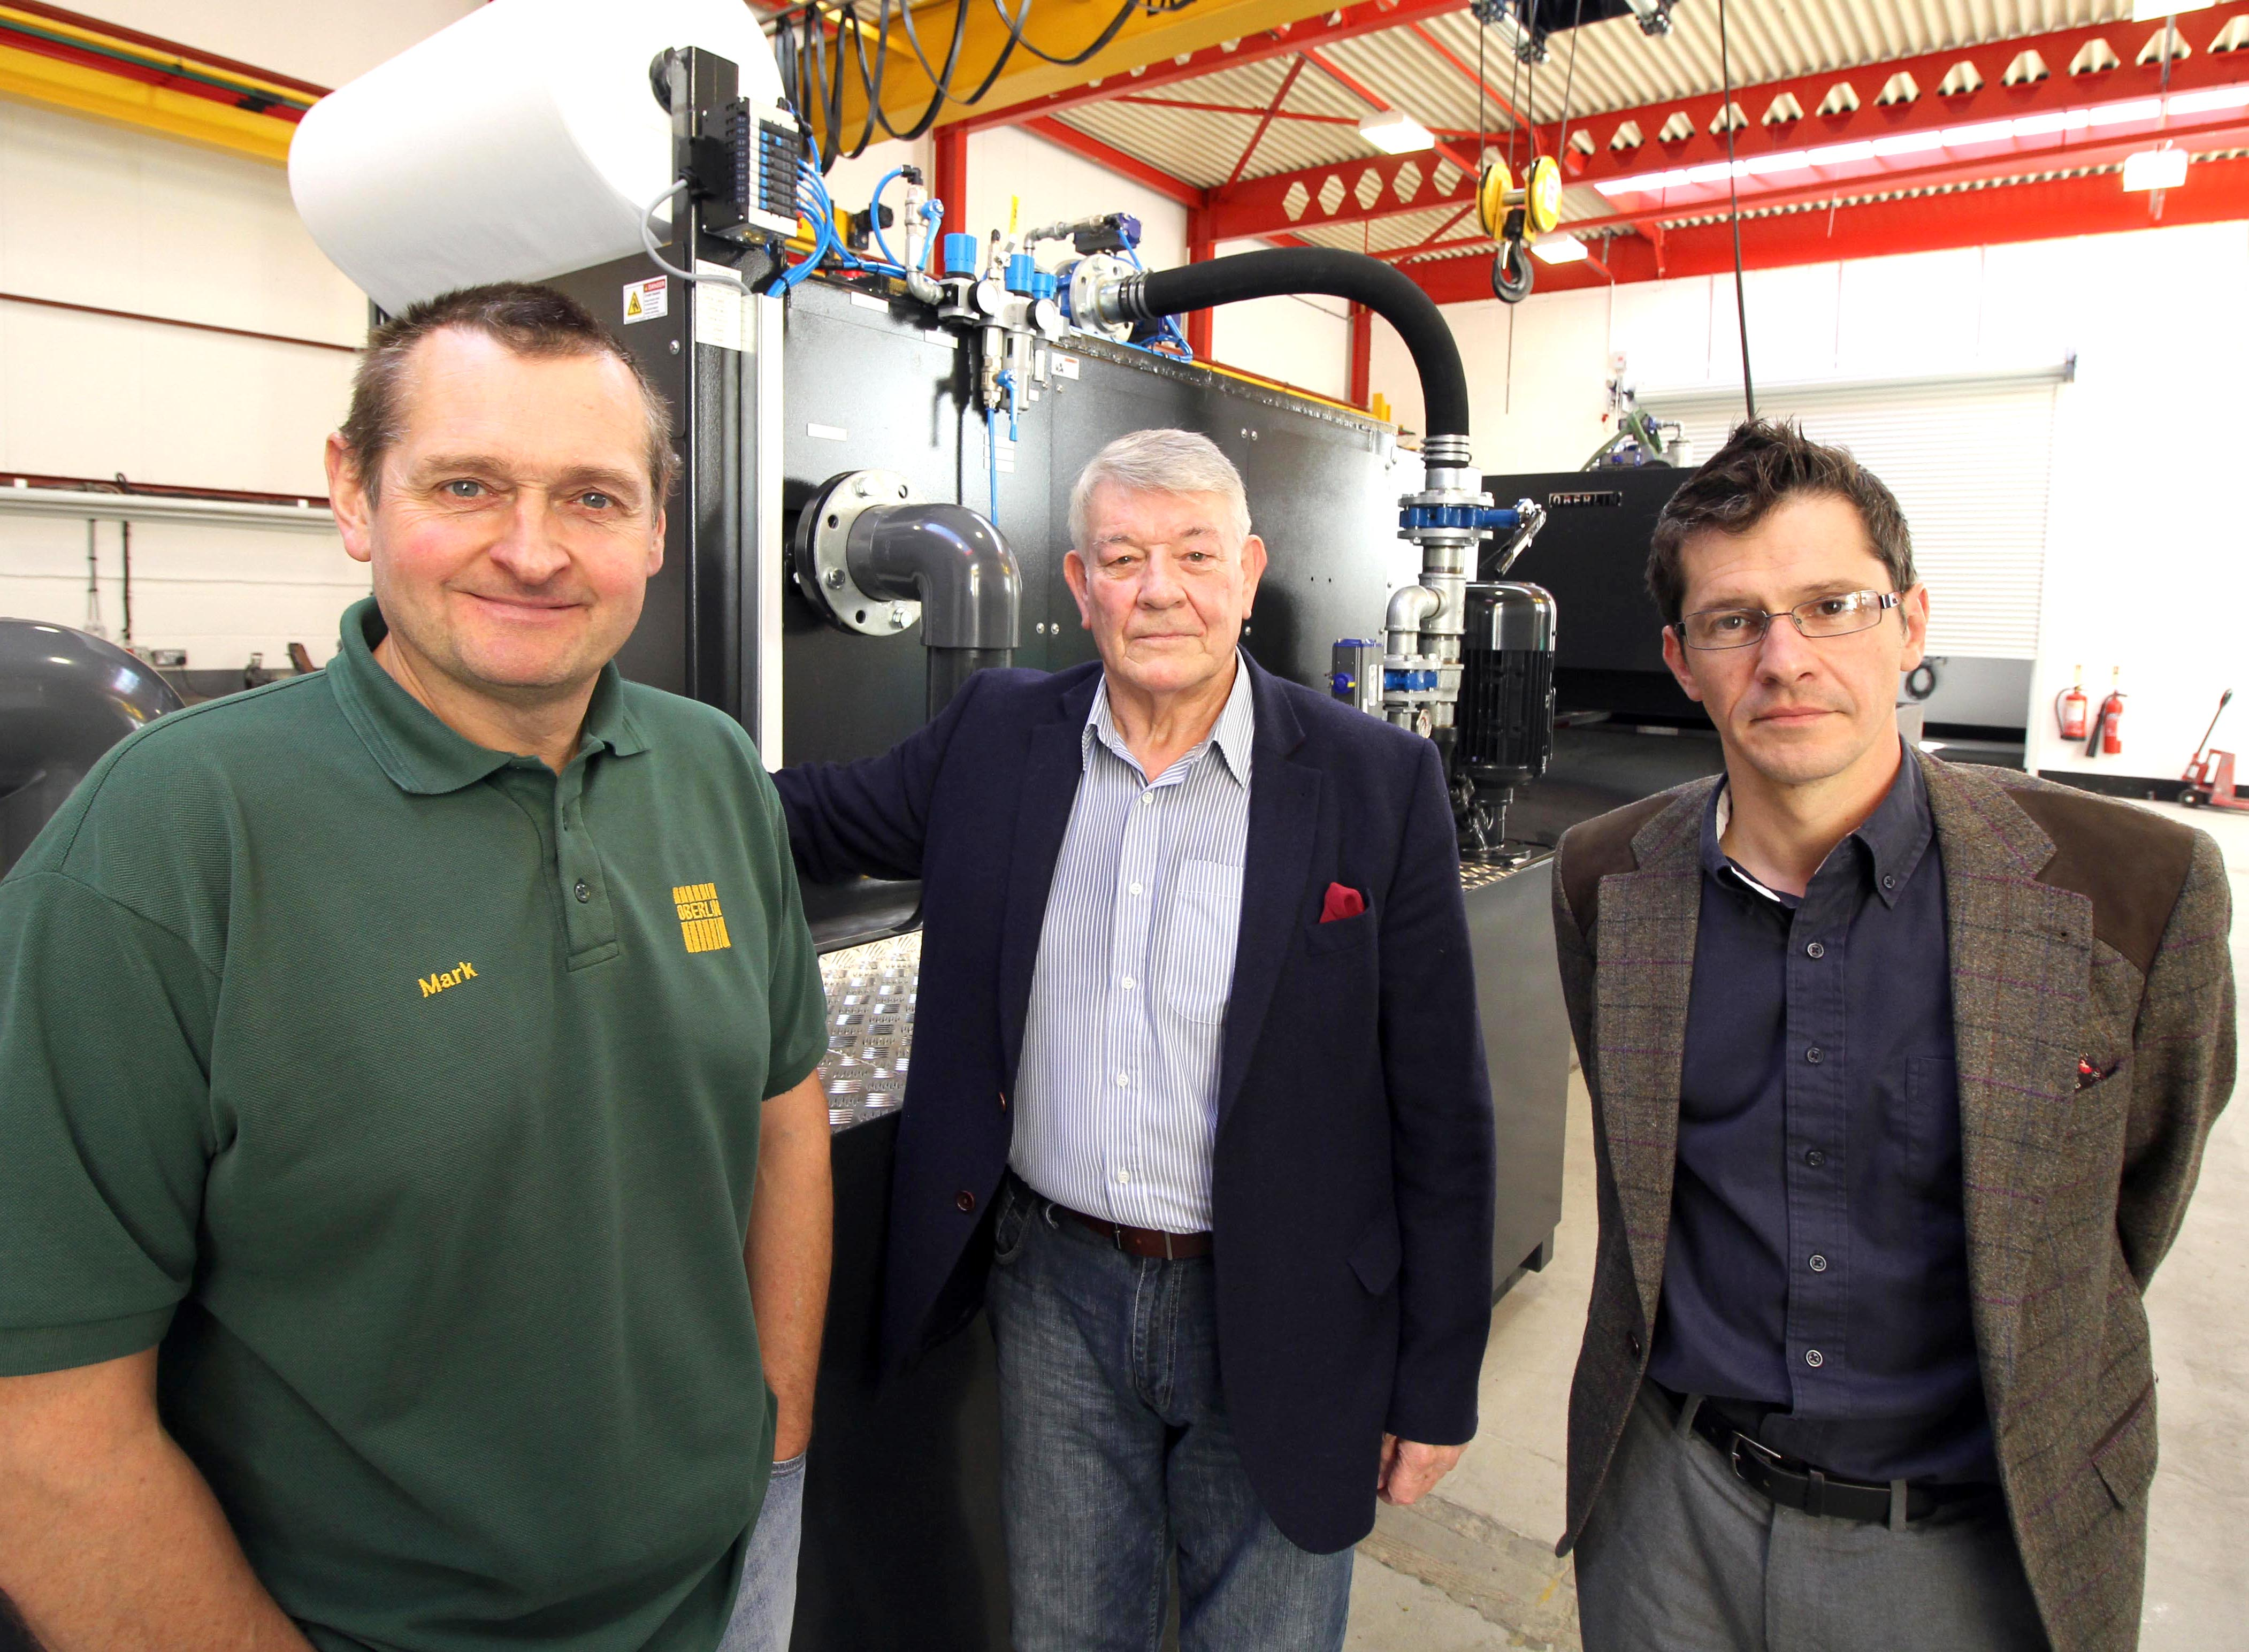 Aycliffe Company Moves to Larger Premises